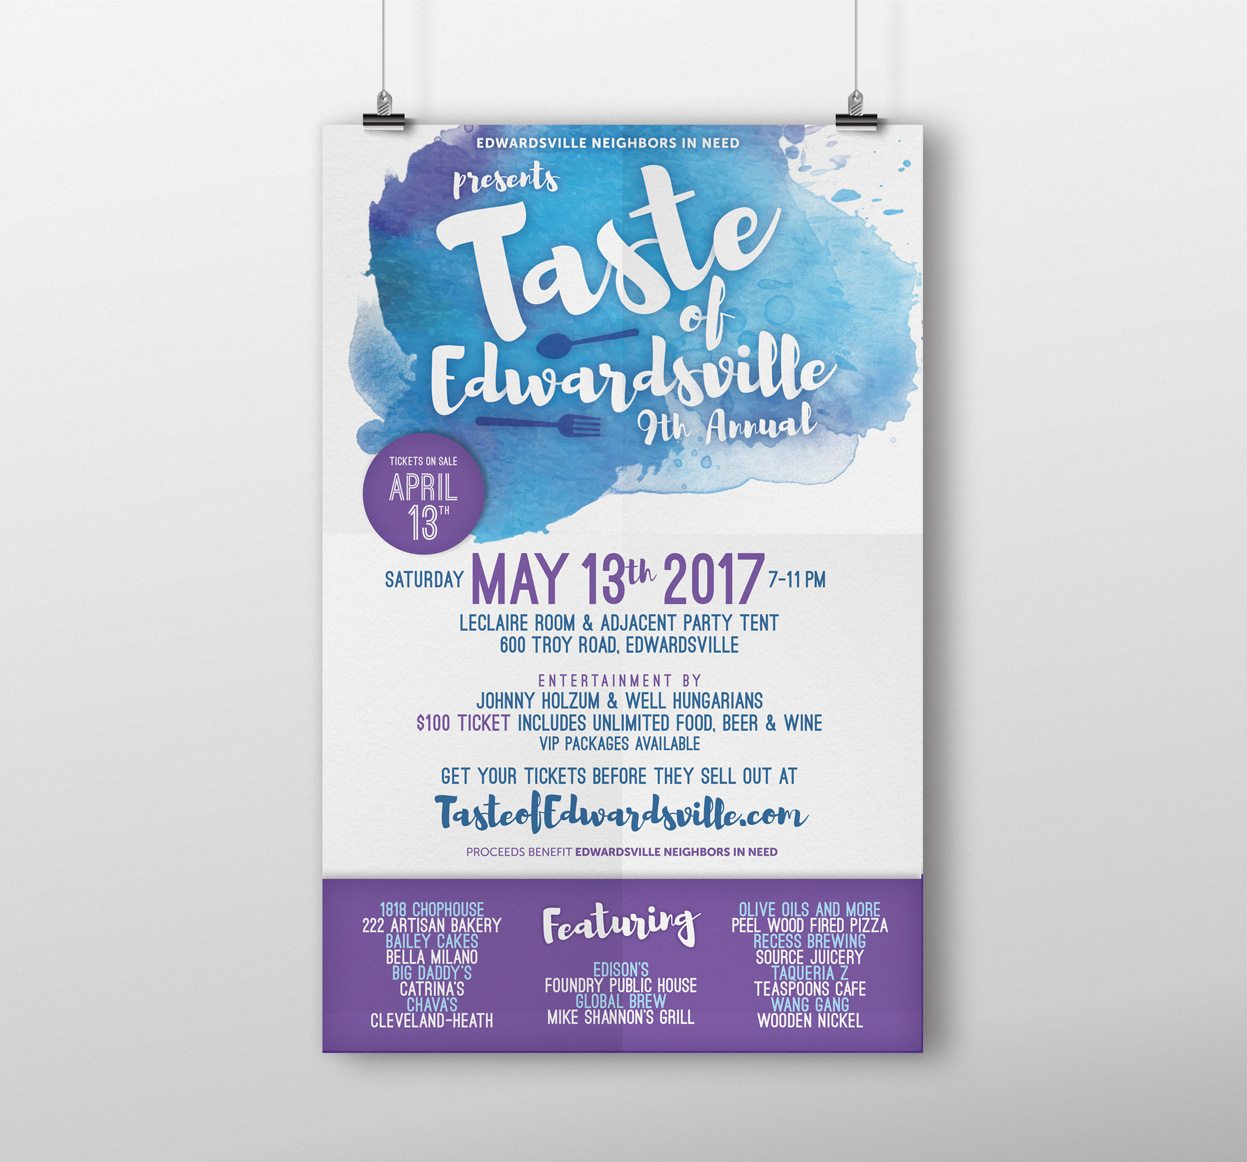 Taste of Edwardsville promotional poster